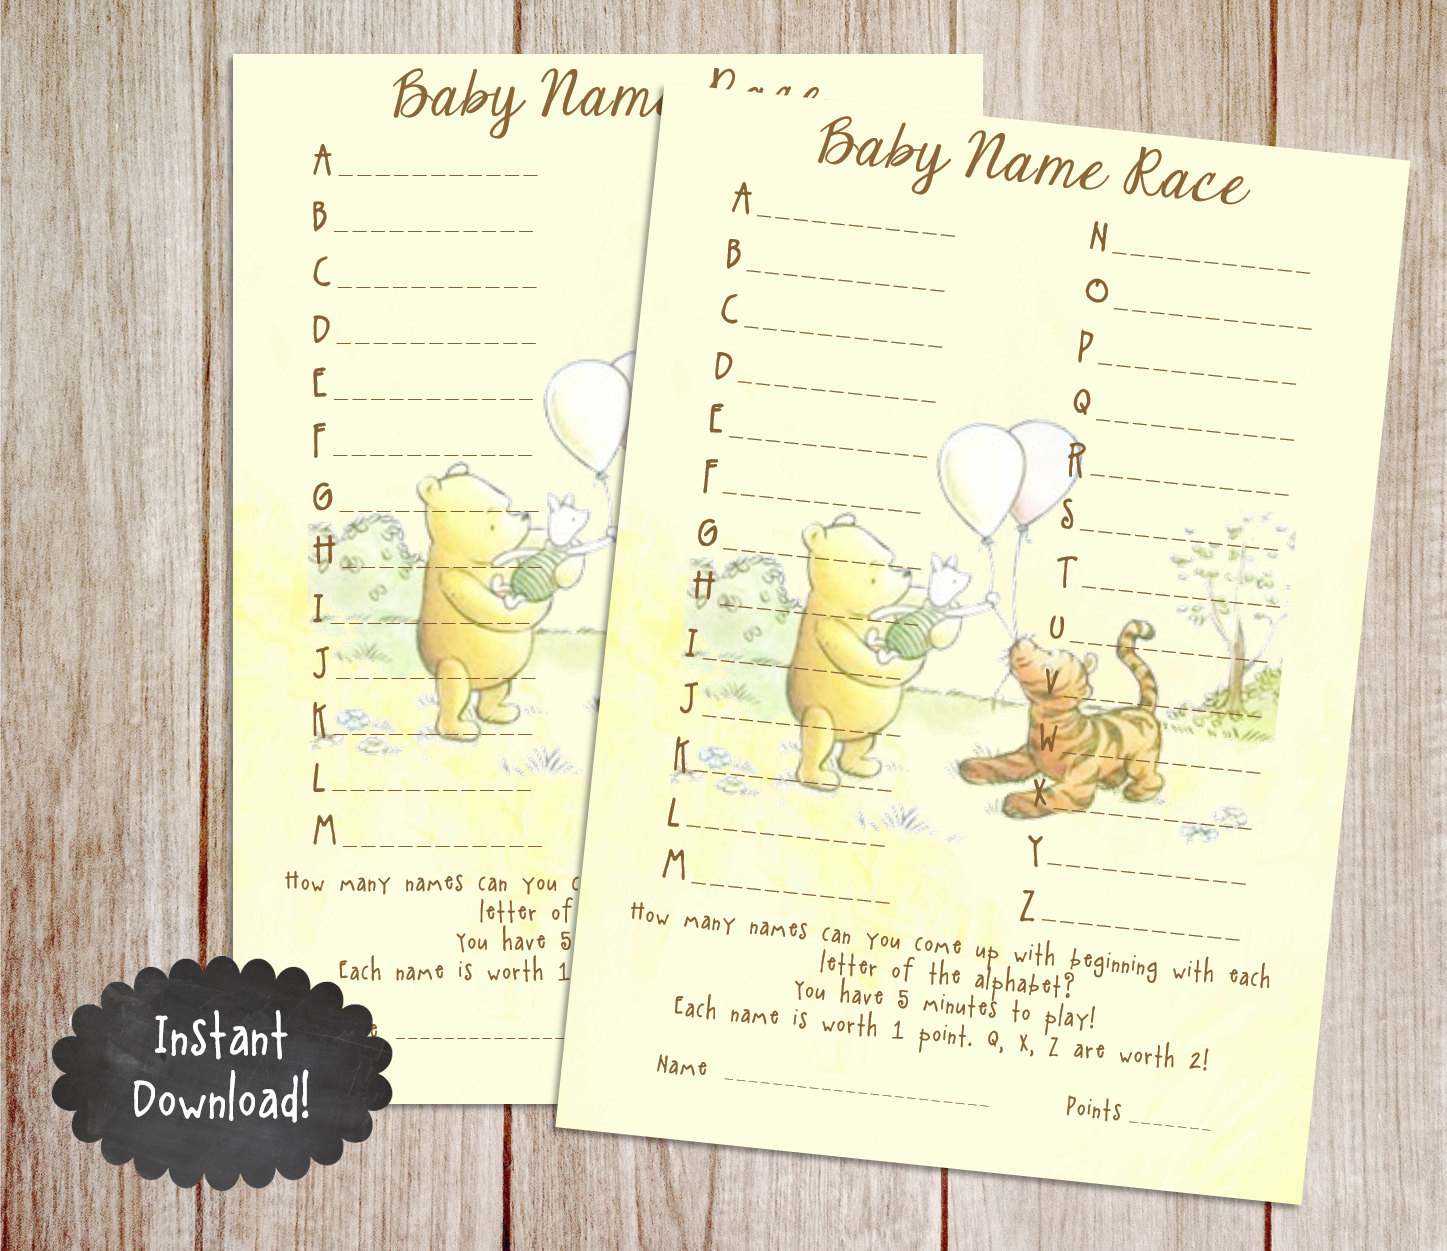 Baby Name Race Baby Shower Game Printable Winnie the Pooh